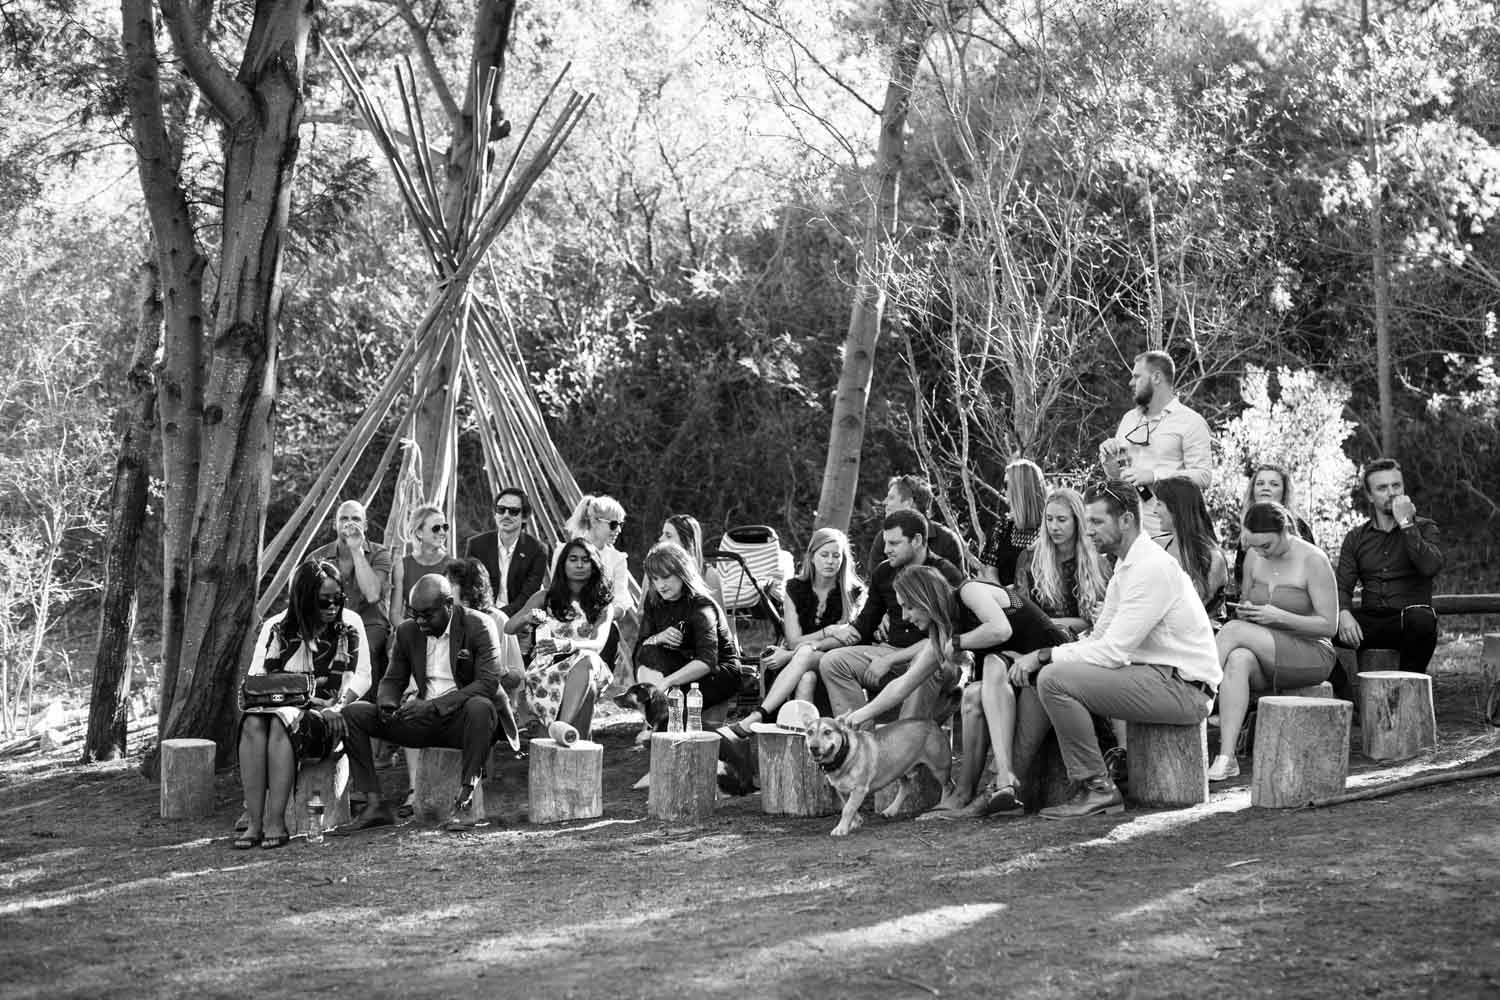 Wedding guests sitting on log stumps in a forest waiting for the bride and groom to get married, in Tulbagh, Cape Town